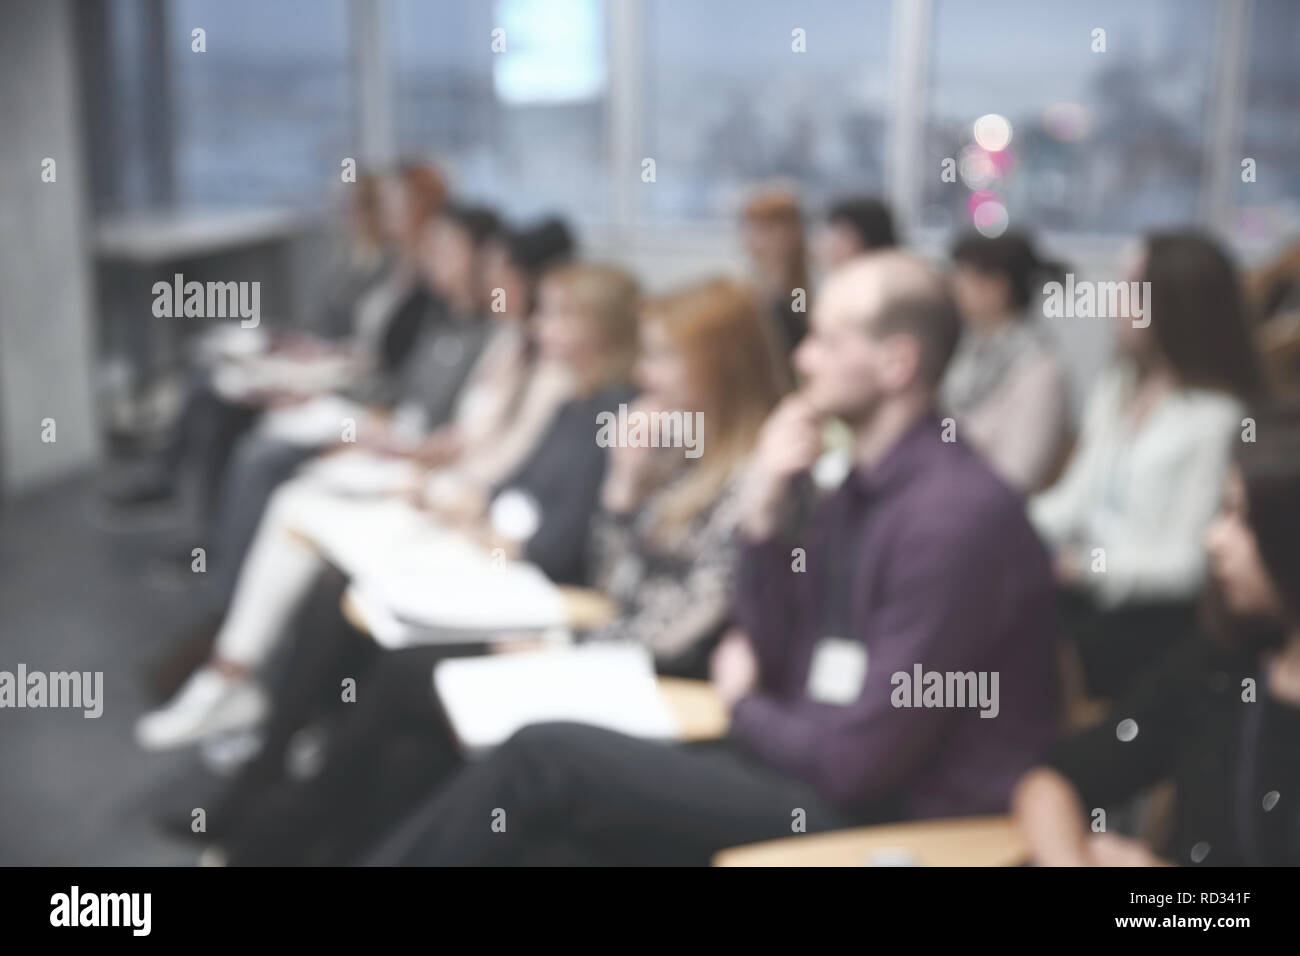 close up.blurred image of students in the conference hall - Stock Image